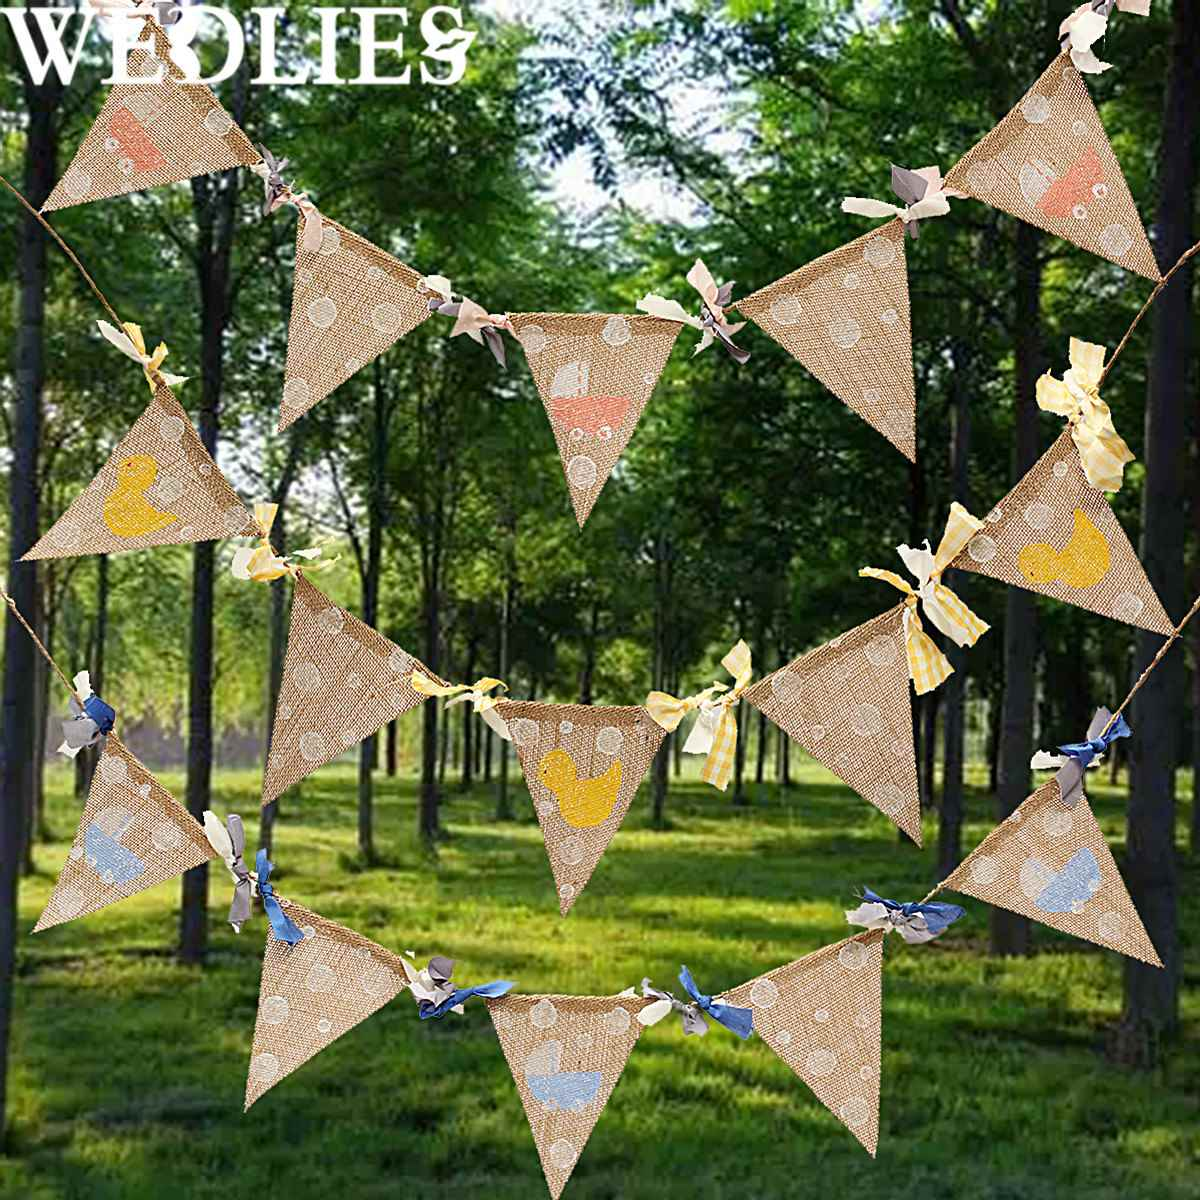 Triangle Flags Burlap Banners Linen Bunting Garlands Wedding Birthday Party Ornament Accessories Outdoor Events Camping Decor(China (Mainland))